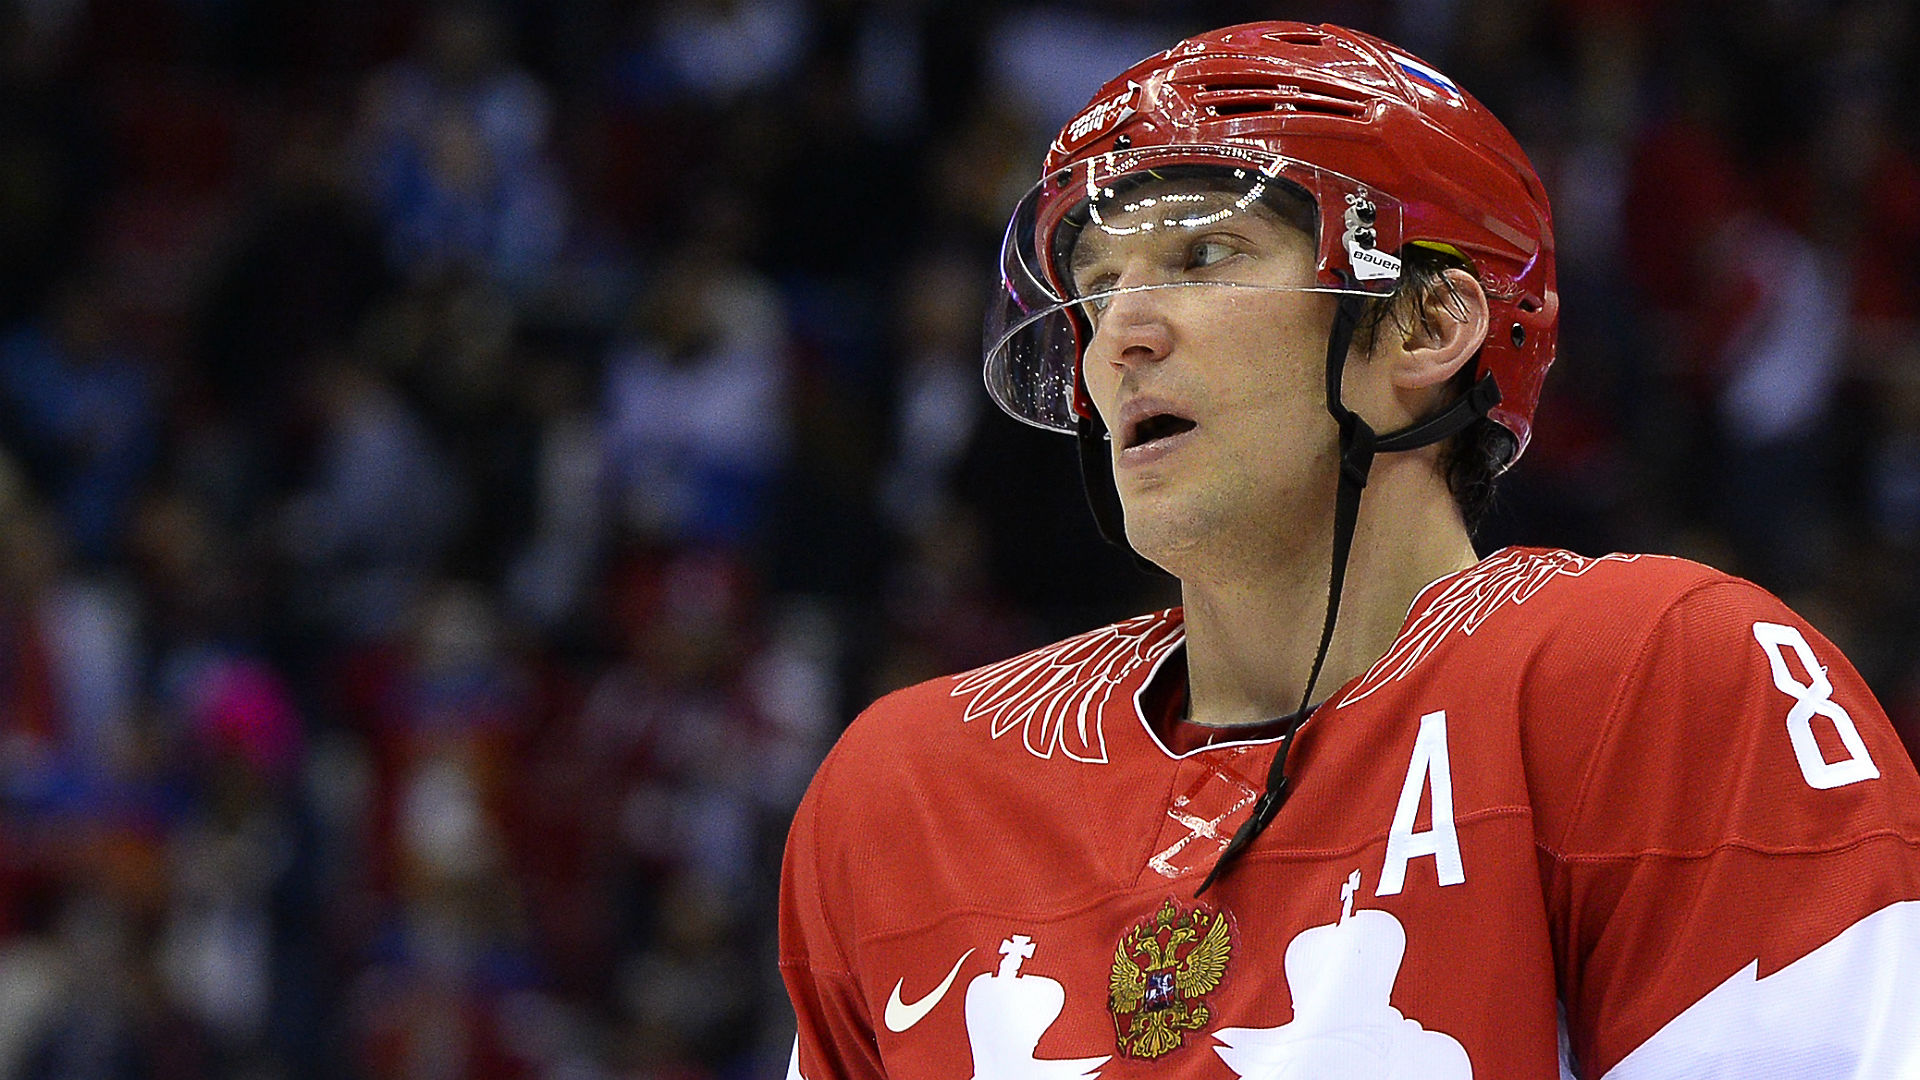 Alex Ovechkin throws support behind Russian athletes in wake of Olympic ban